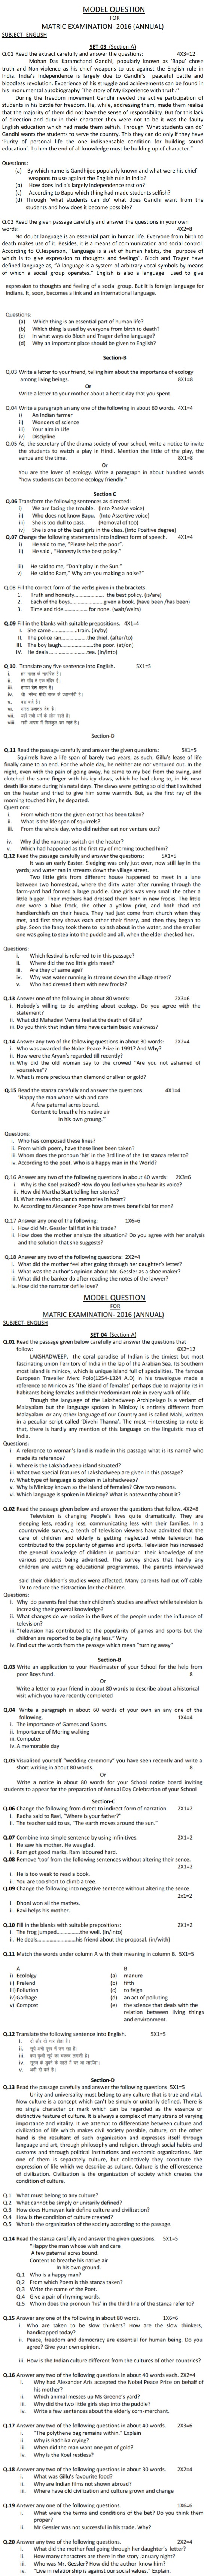 Bihar Board Class X Model Question Papers - English